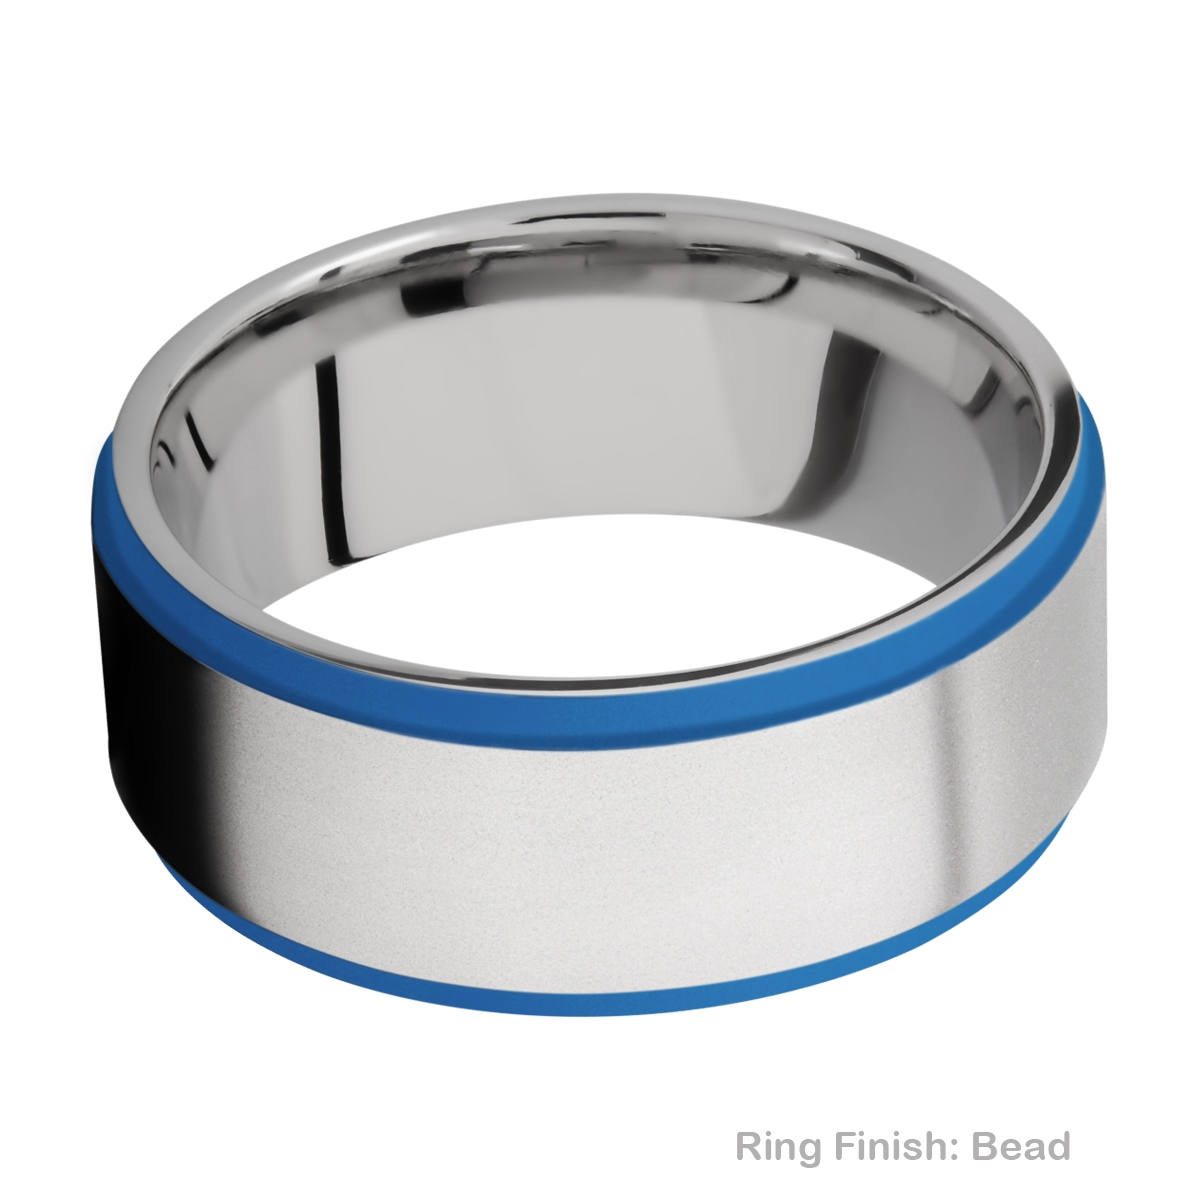 Lashbrook CC10FGE21EDGE/A/CERAKOTE Cobalt Chrome Wedding Ring or Band Alternative View 3